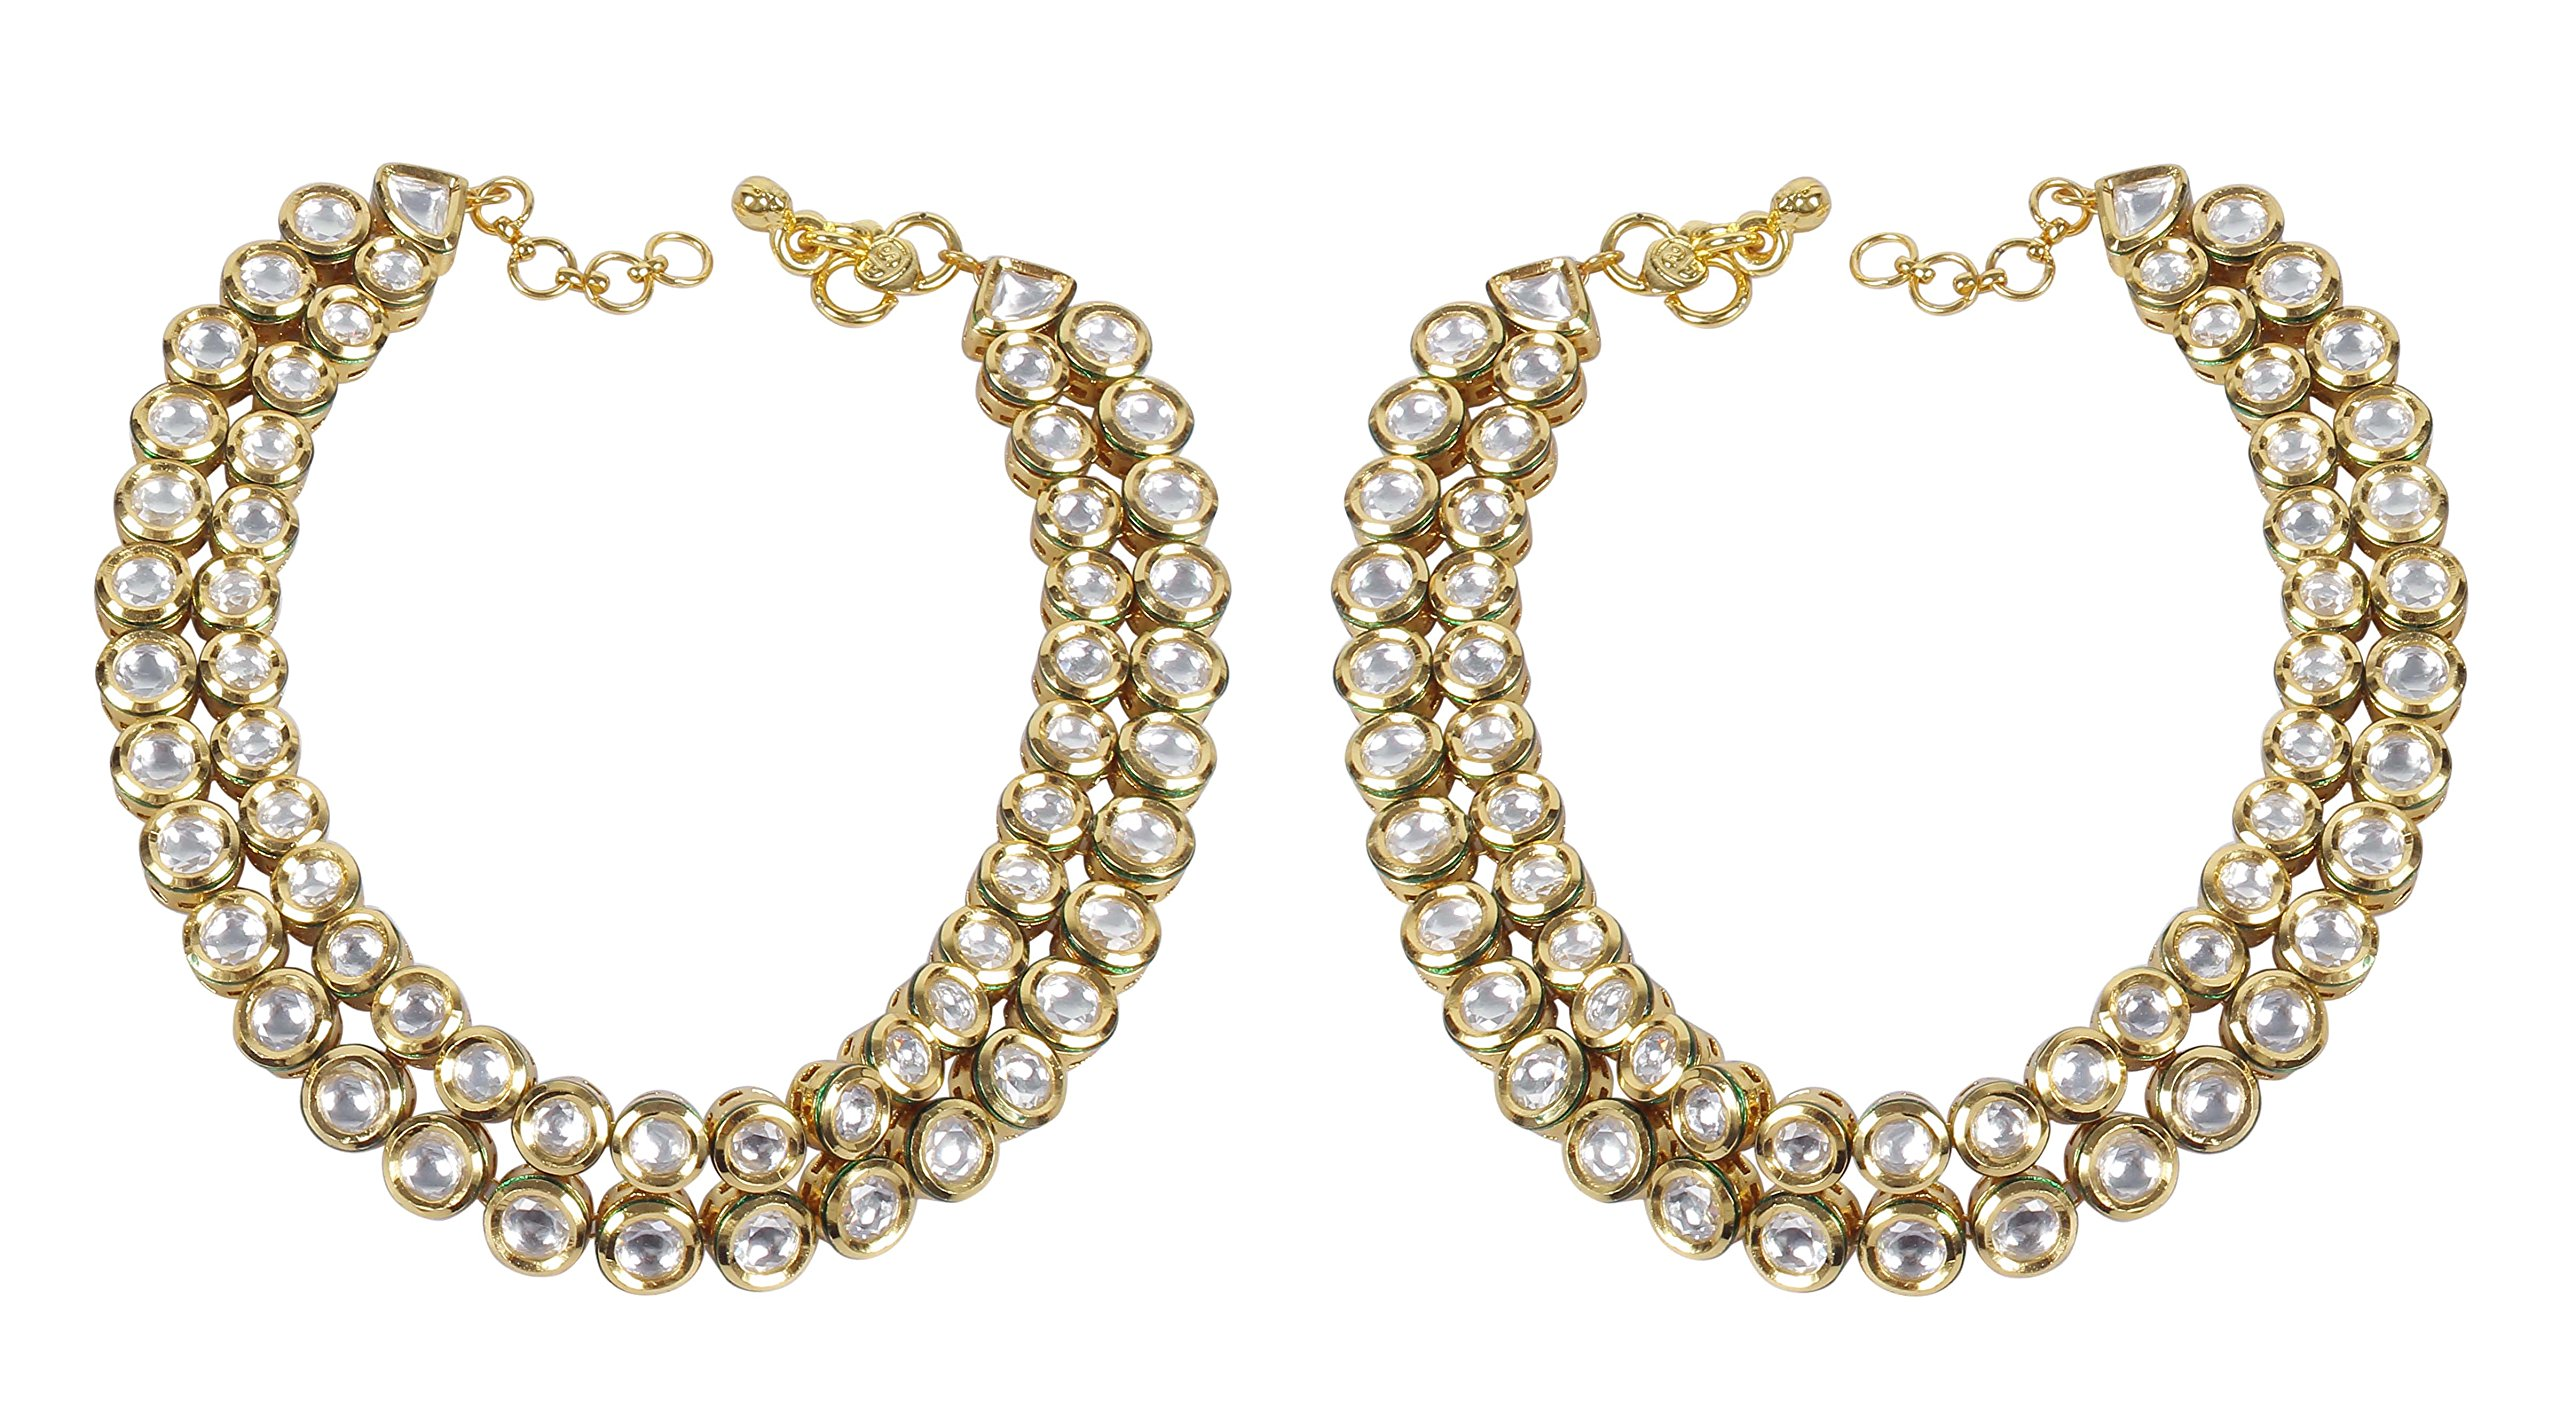 Muchmore Asian Ethnic Traditional Fashion Gold Tone Kundan Stone Anklet Partywear Jewelry by MUCHMORE (Image #2)